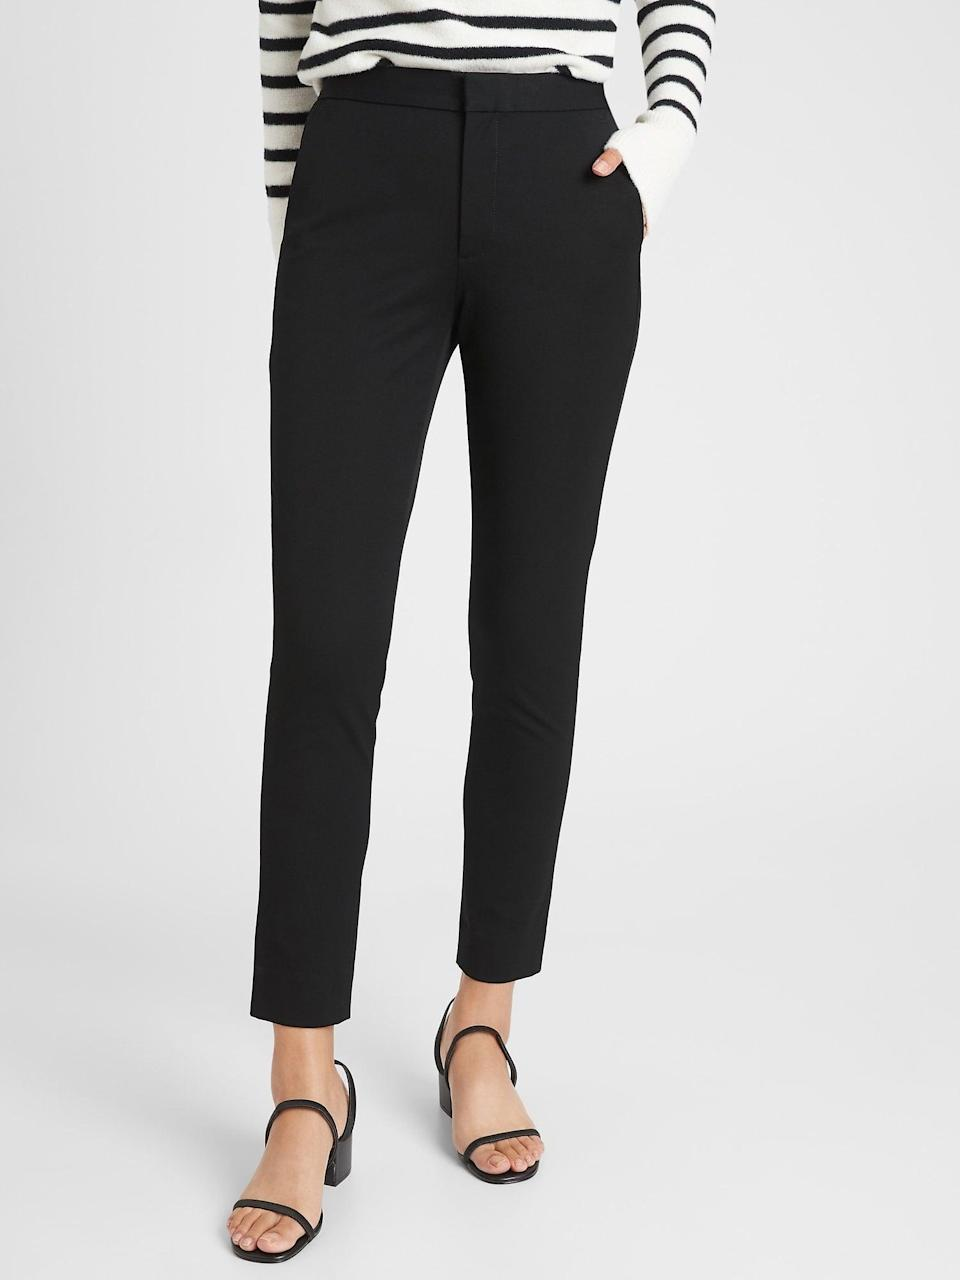 <p>These <span>Banana Republic High Rise Slim Ankle Bistretch Pants</span> ($24, originally $80) will make you look and feel confident.</p>